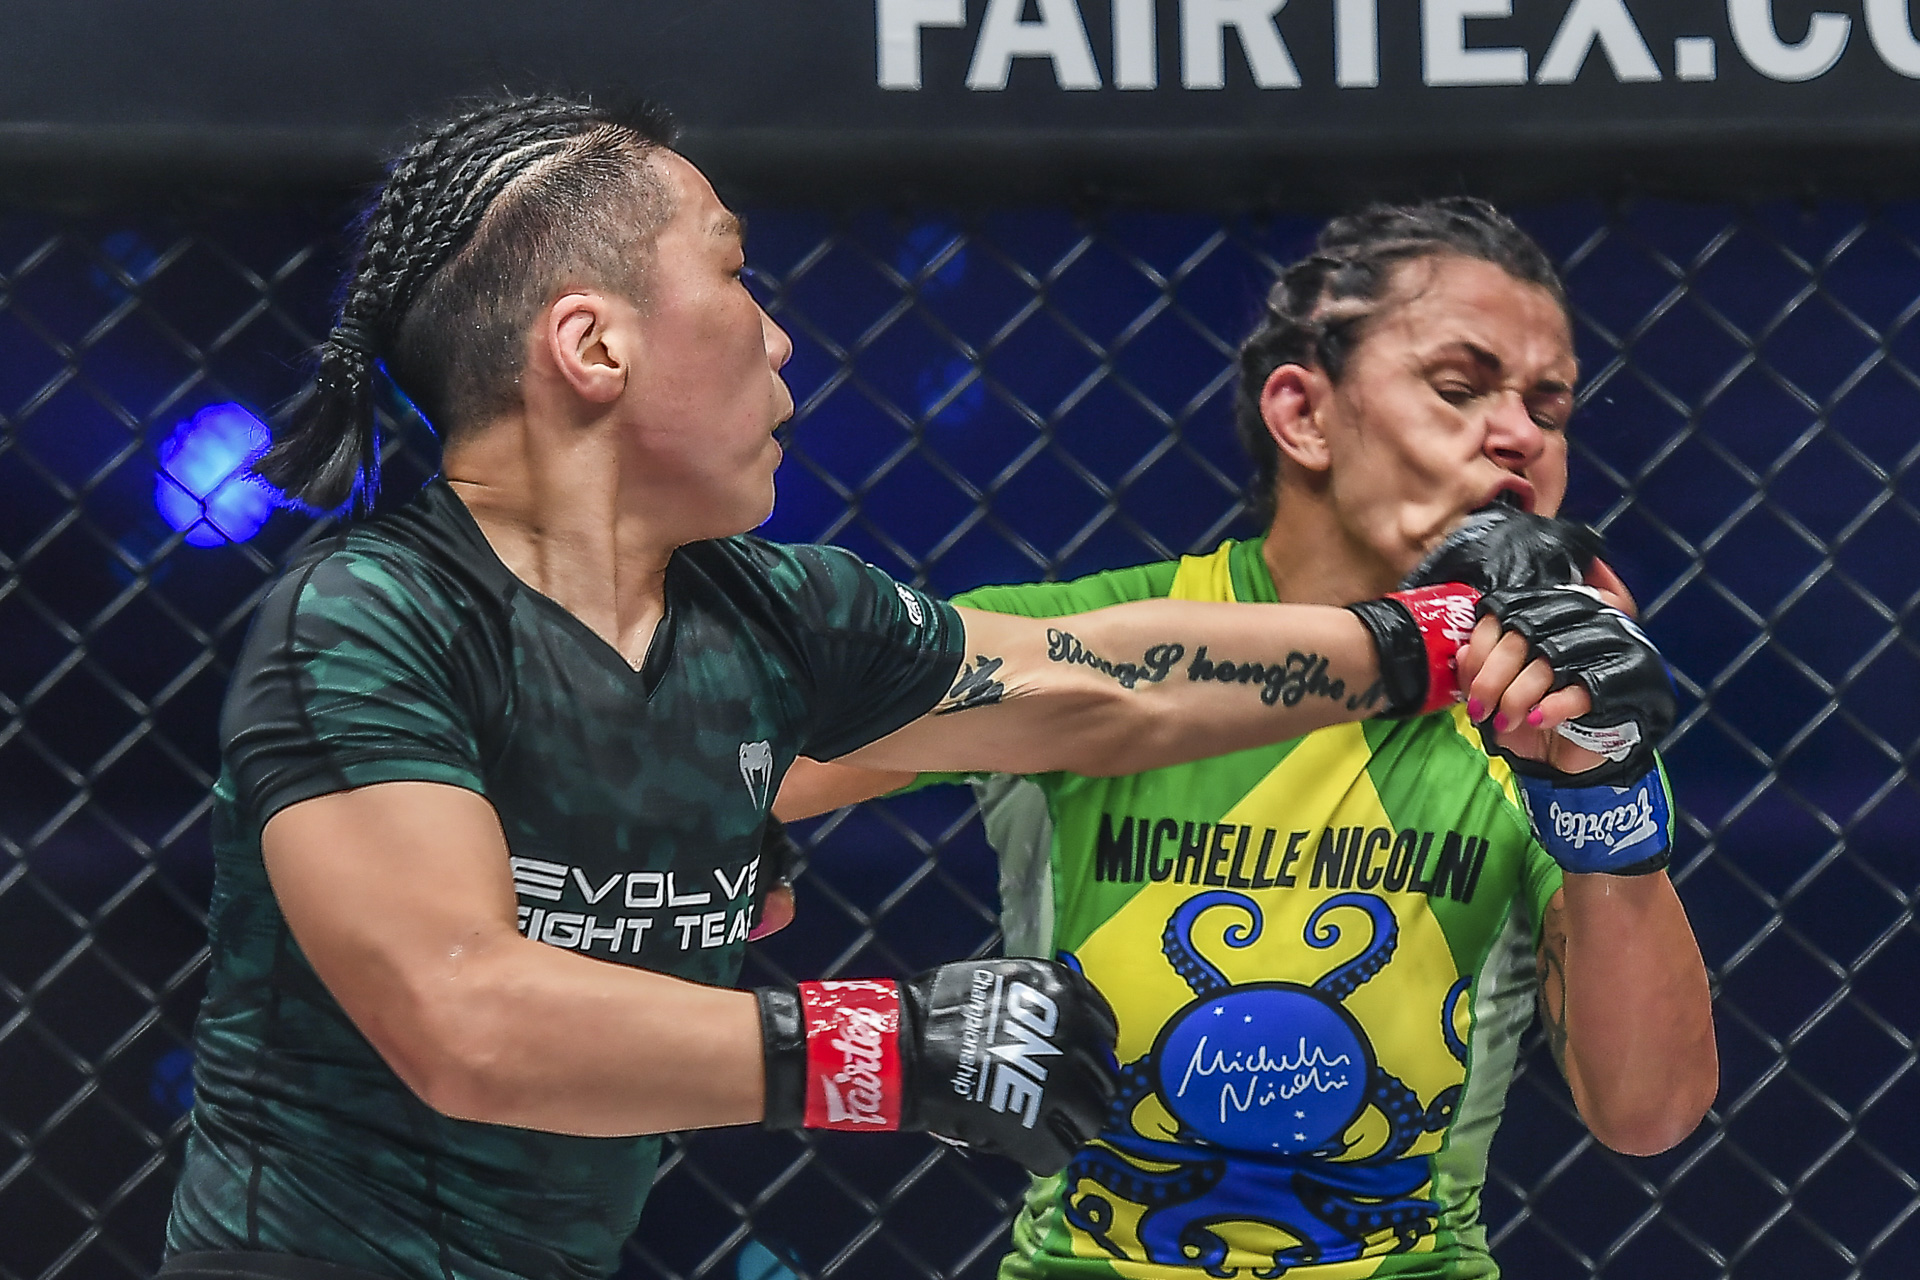 Pictures from the World Title fight between Xiong Jing Nan and Michelle Nicolini at ONE: EMPOWER